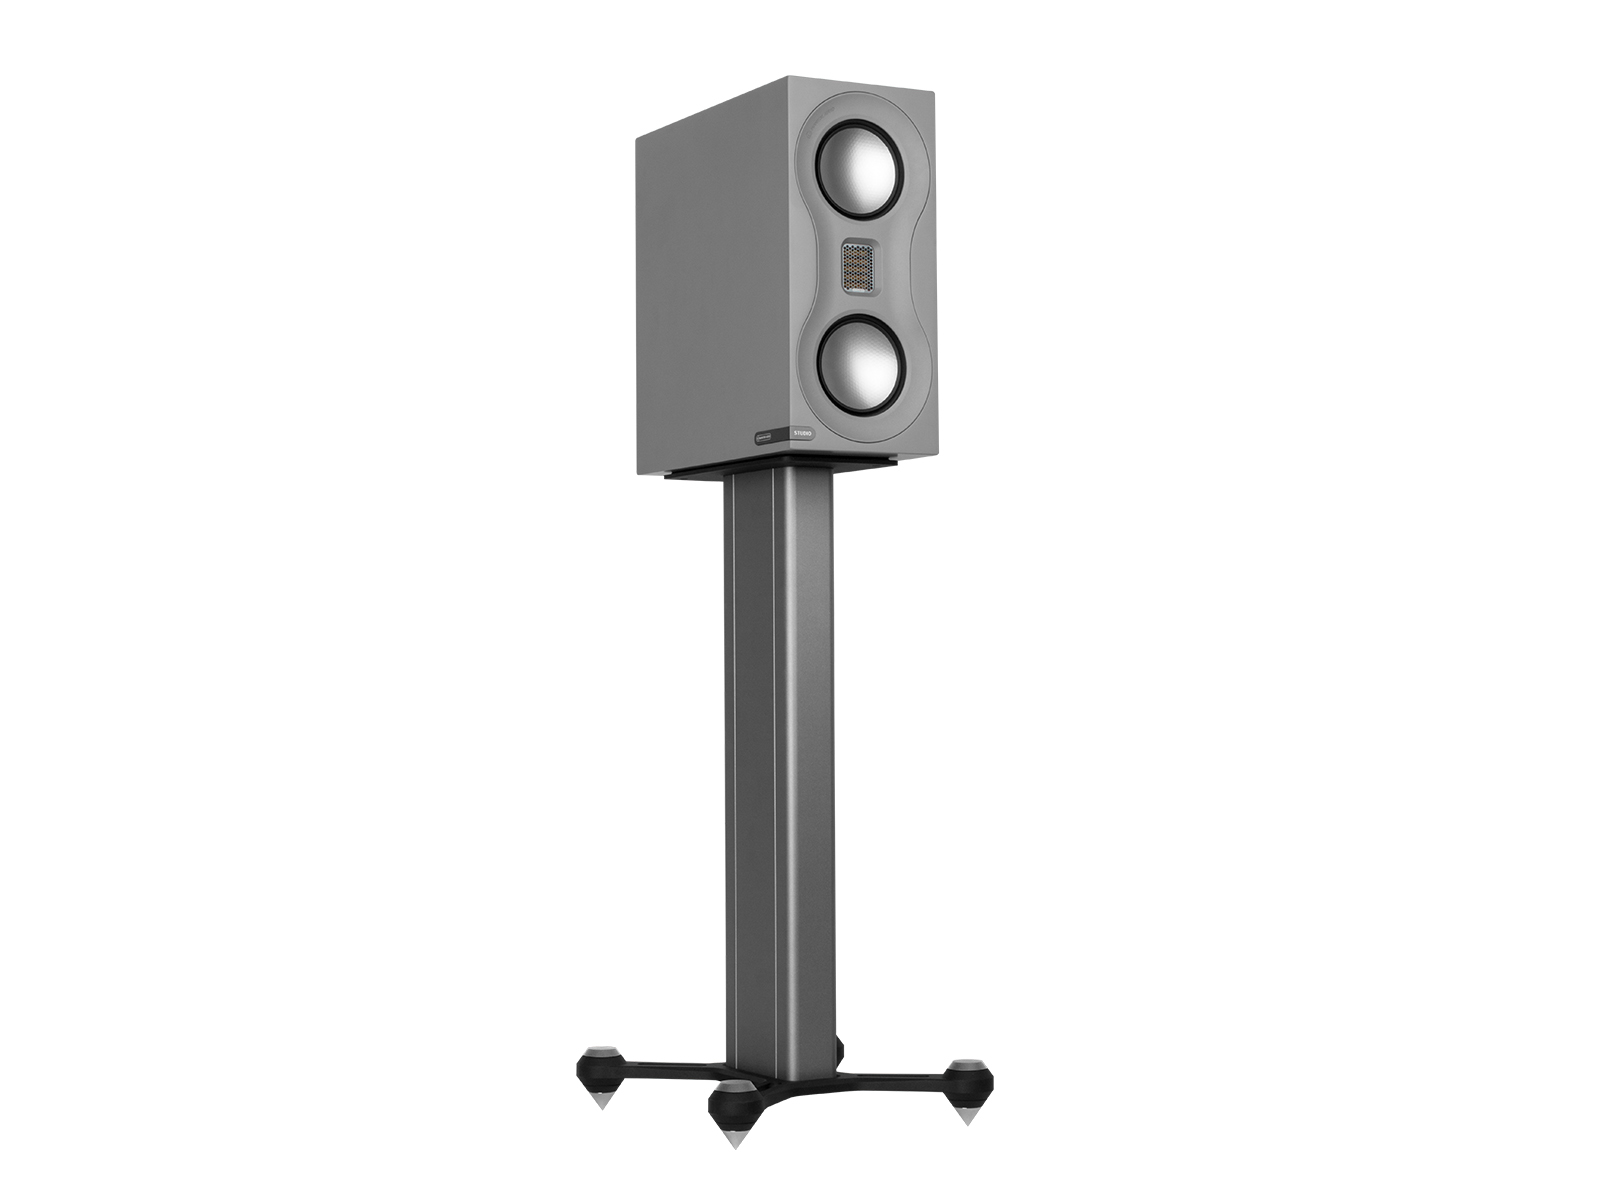 Speaker STAND, grey finish with a grey Studio speaker.